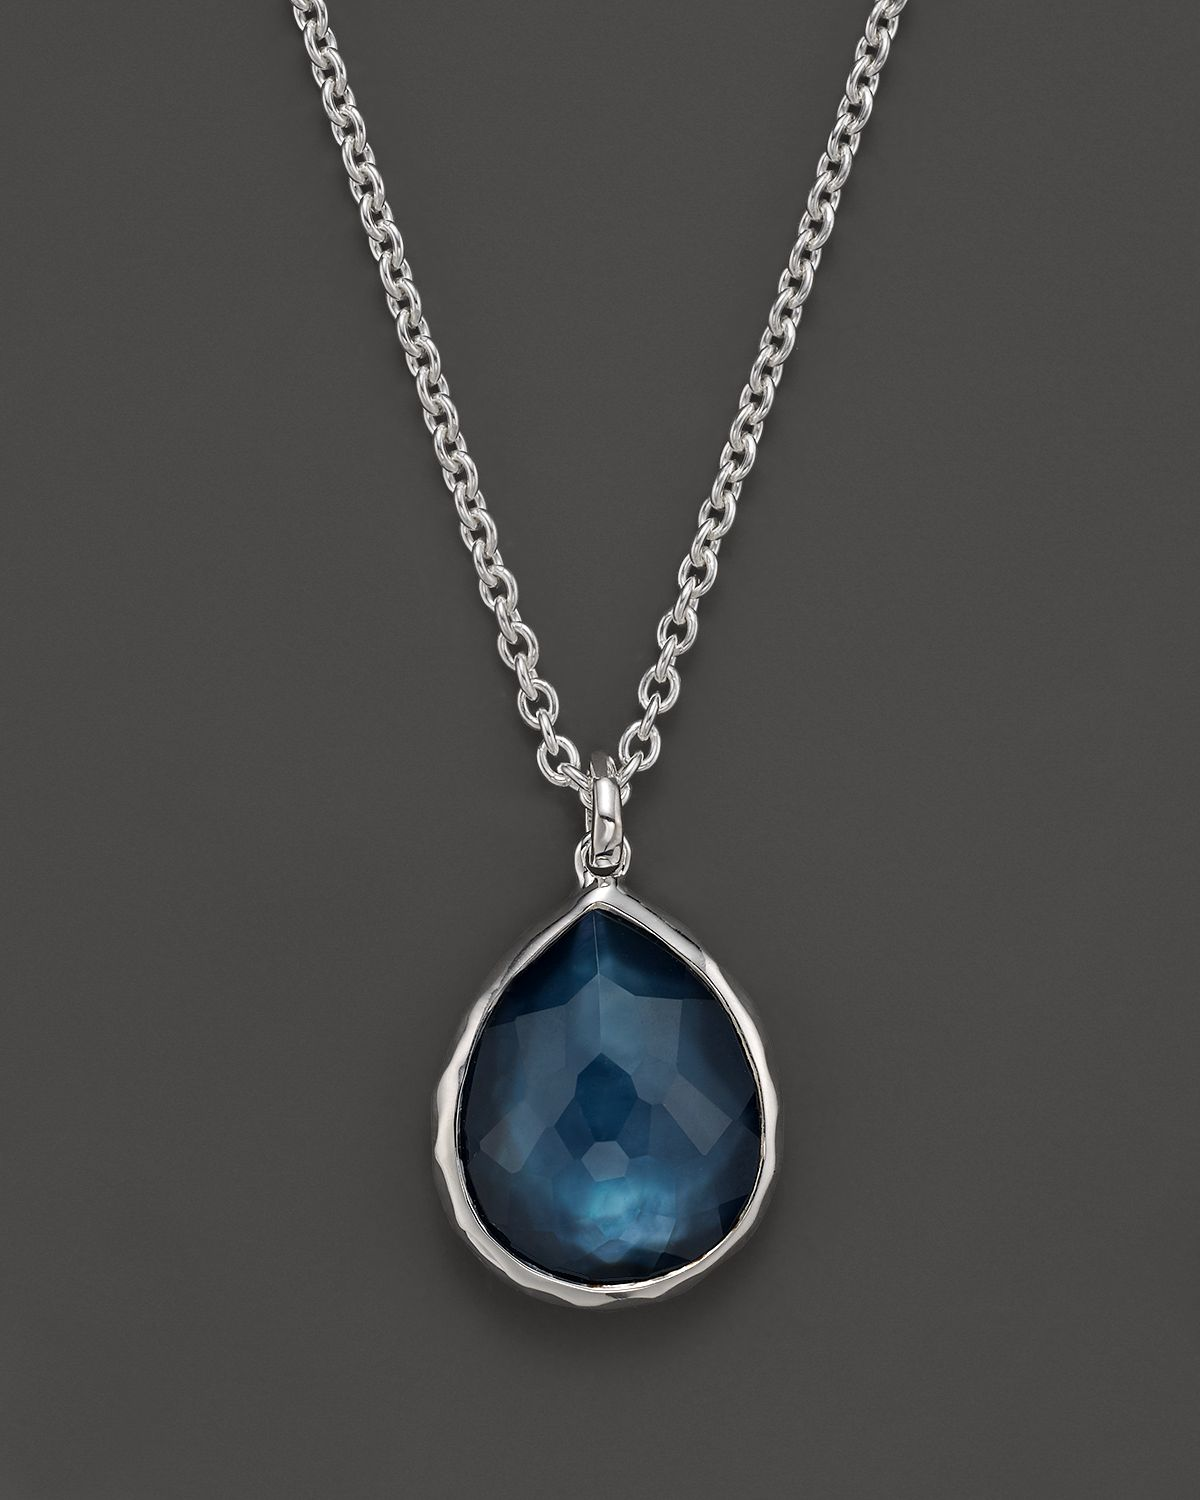 e495b210d0d48b Ippolita Sterling Silver Wonderland Mini Teardrop Pendant Necklace ...